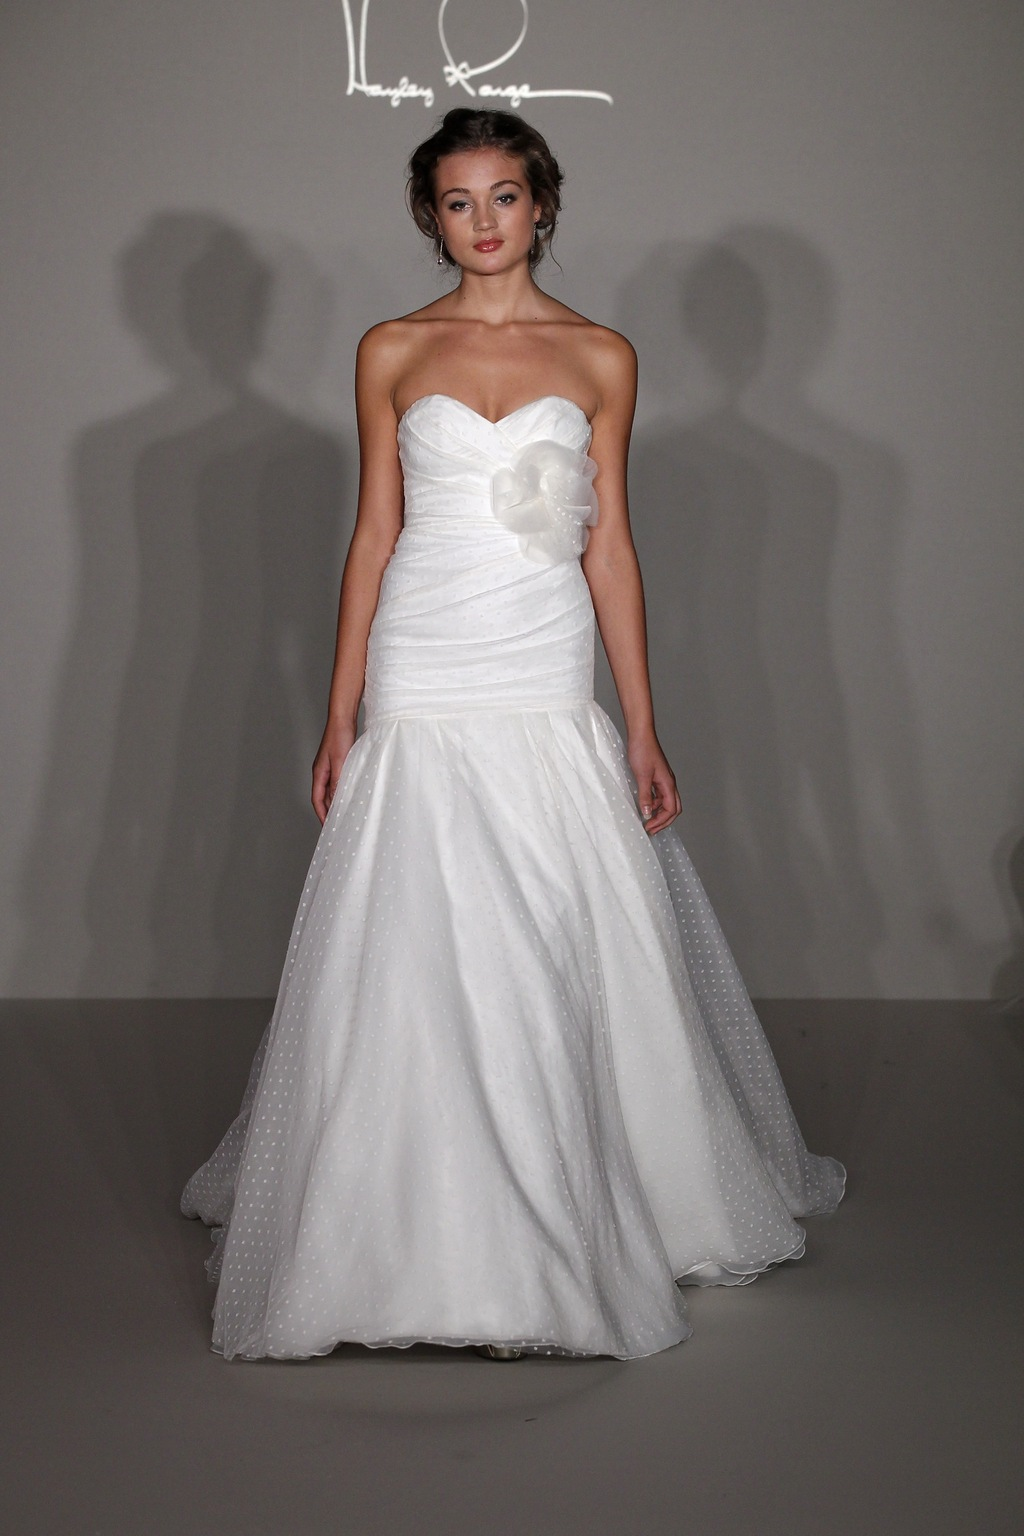 Hayley Paige 2012 wedding dress in point d'esprit fabric